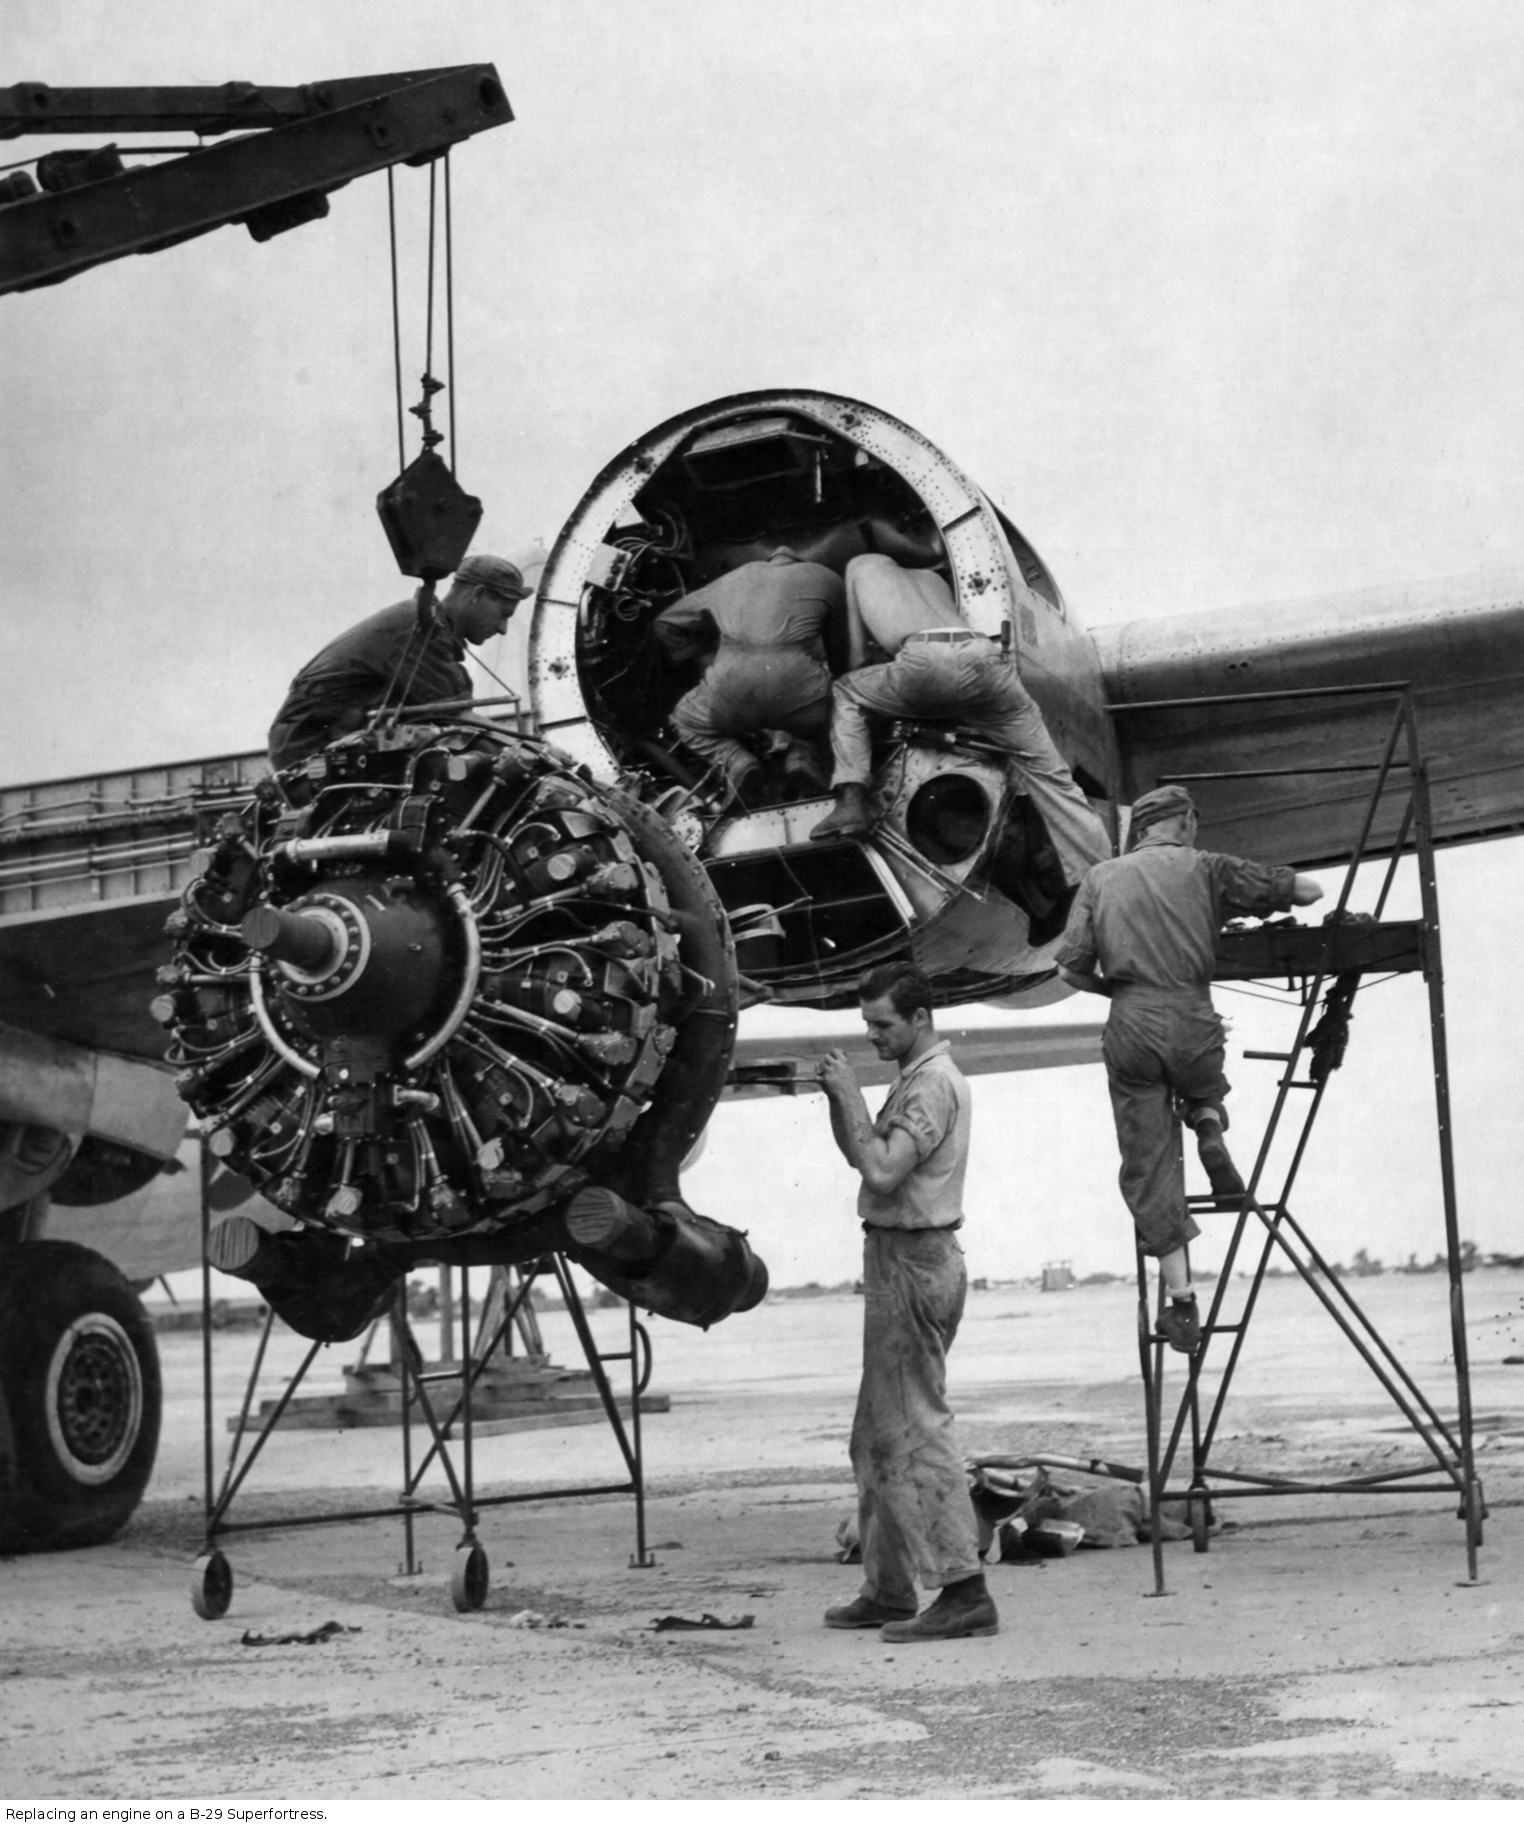 Replacing an engine on a B-29